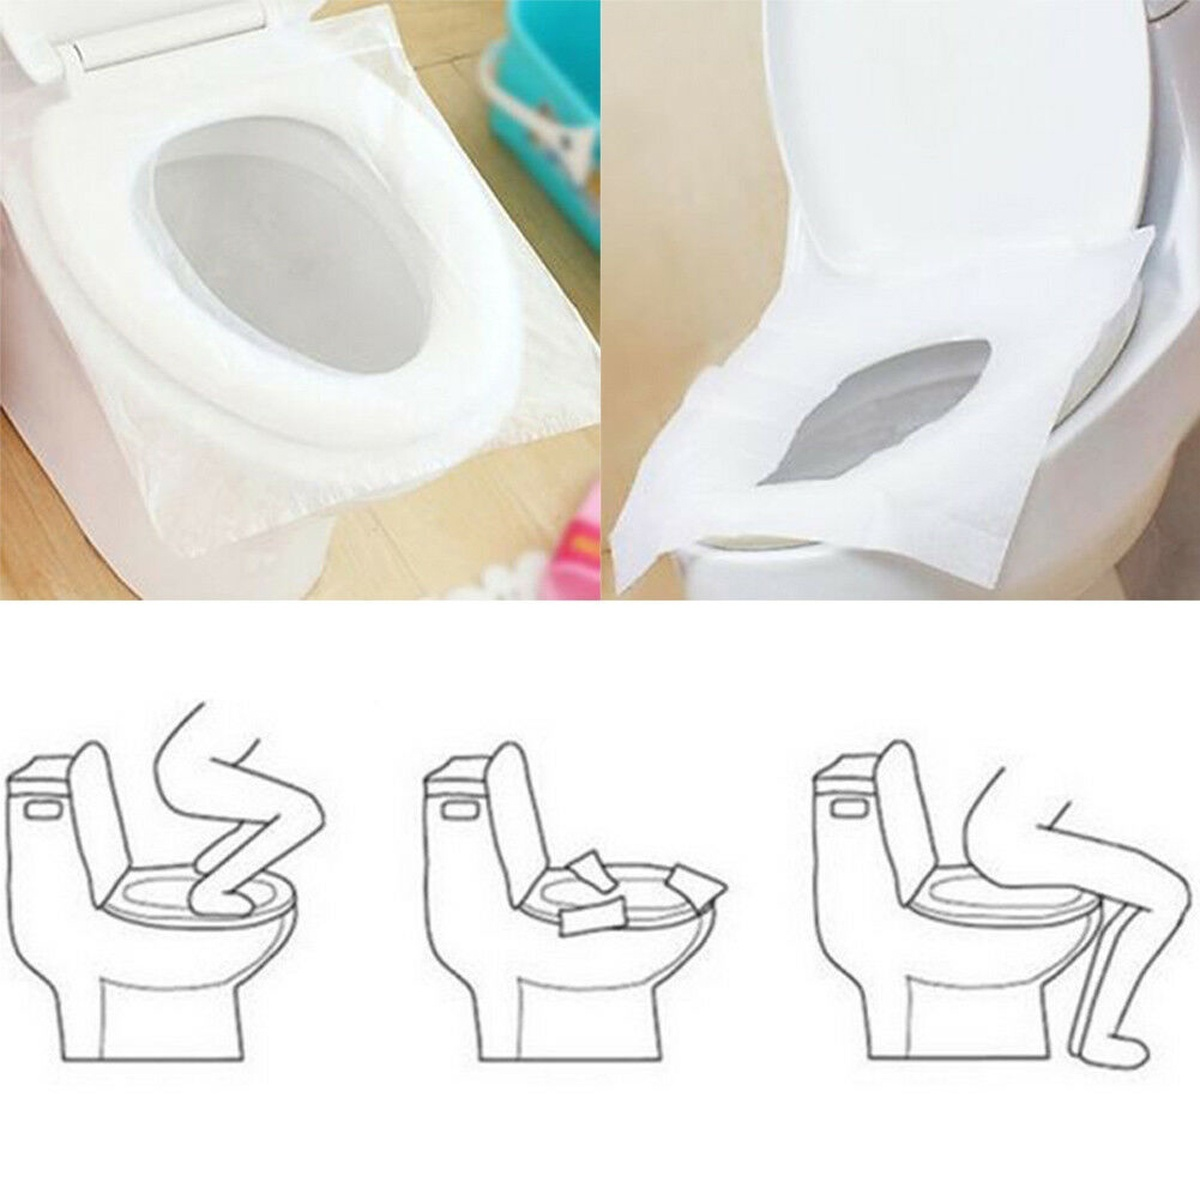 Toilet Seat Disposable Paper Travel Covers Sanitary Cover Biodegradable Camping